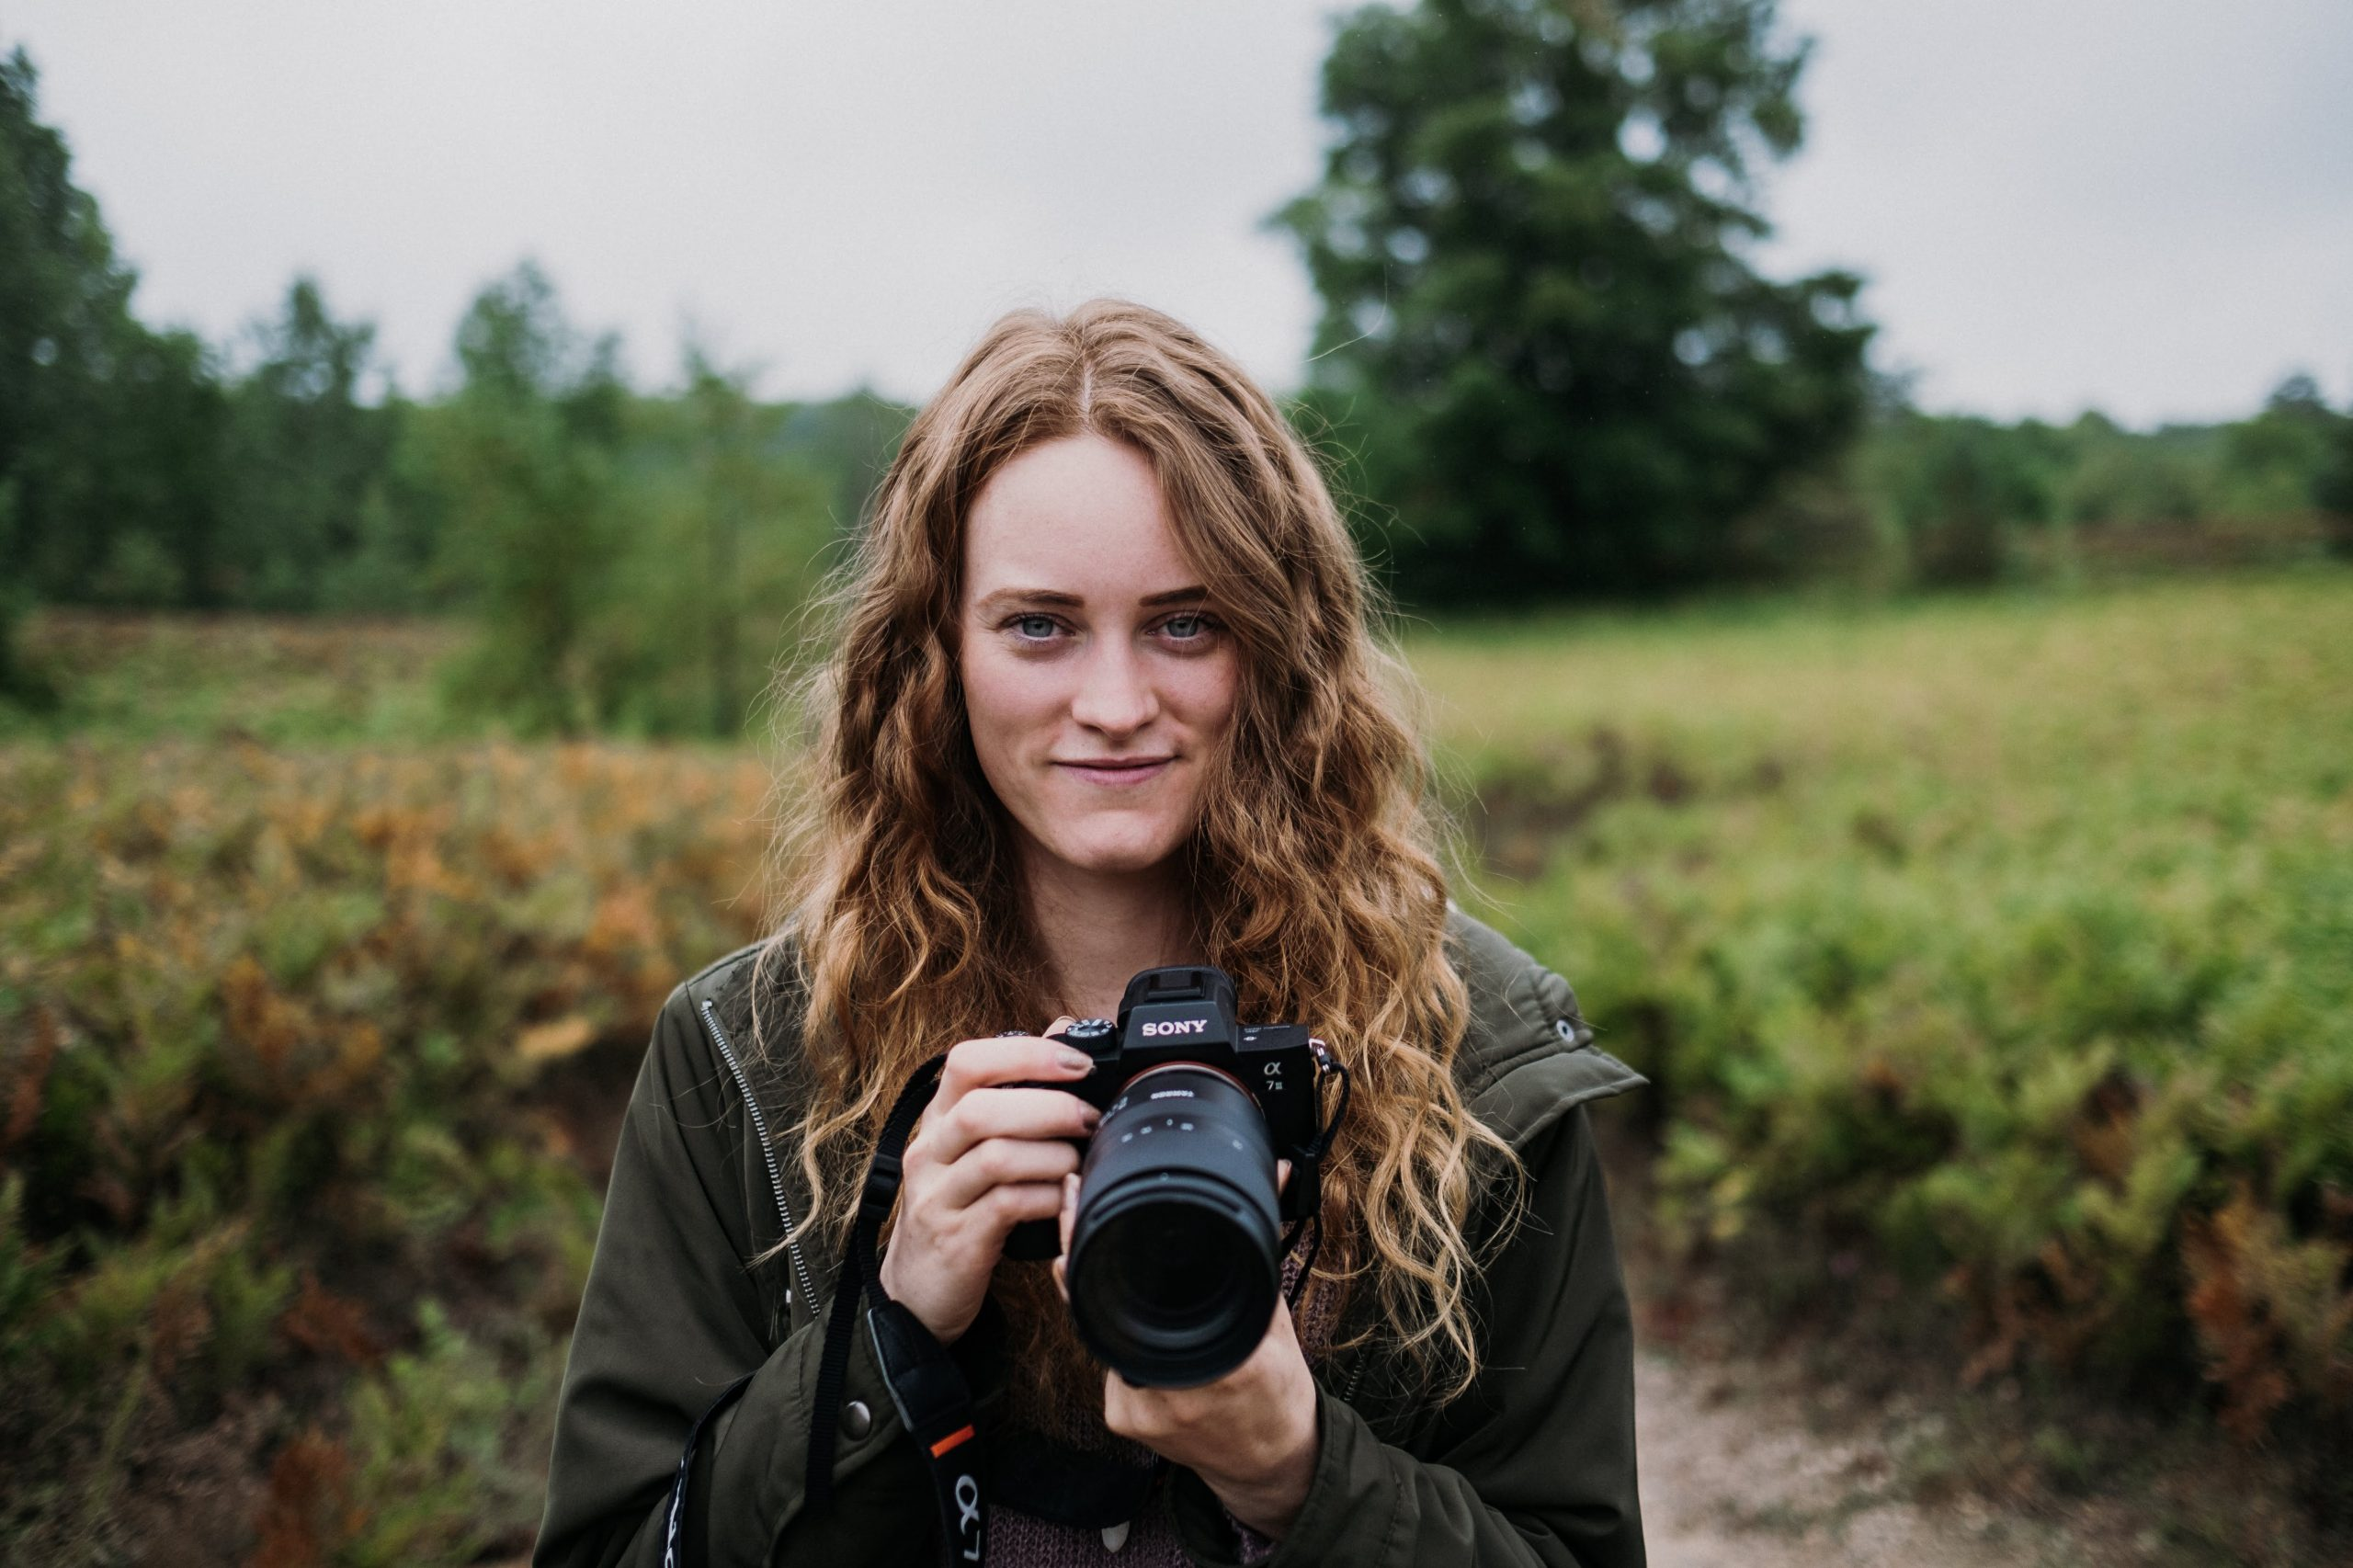 Nicole Geri with sony camera in hands